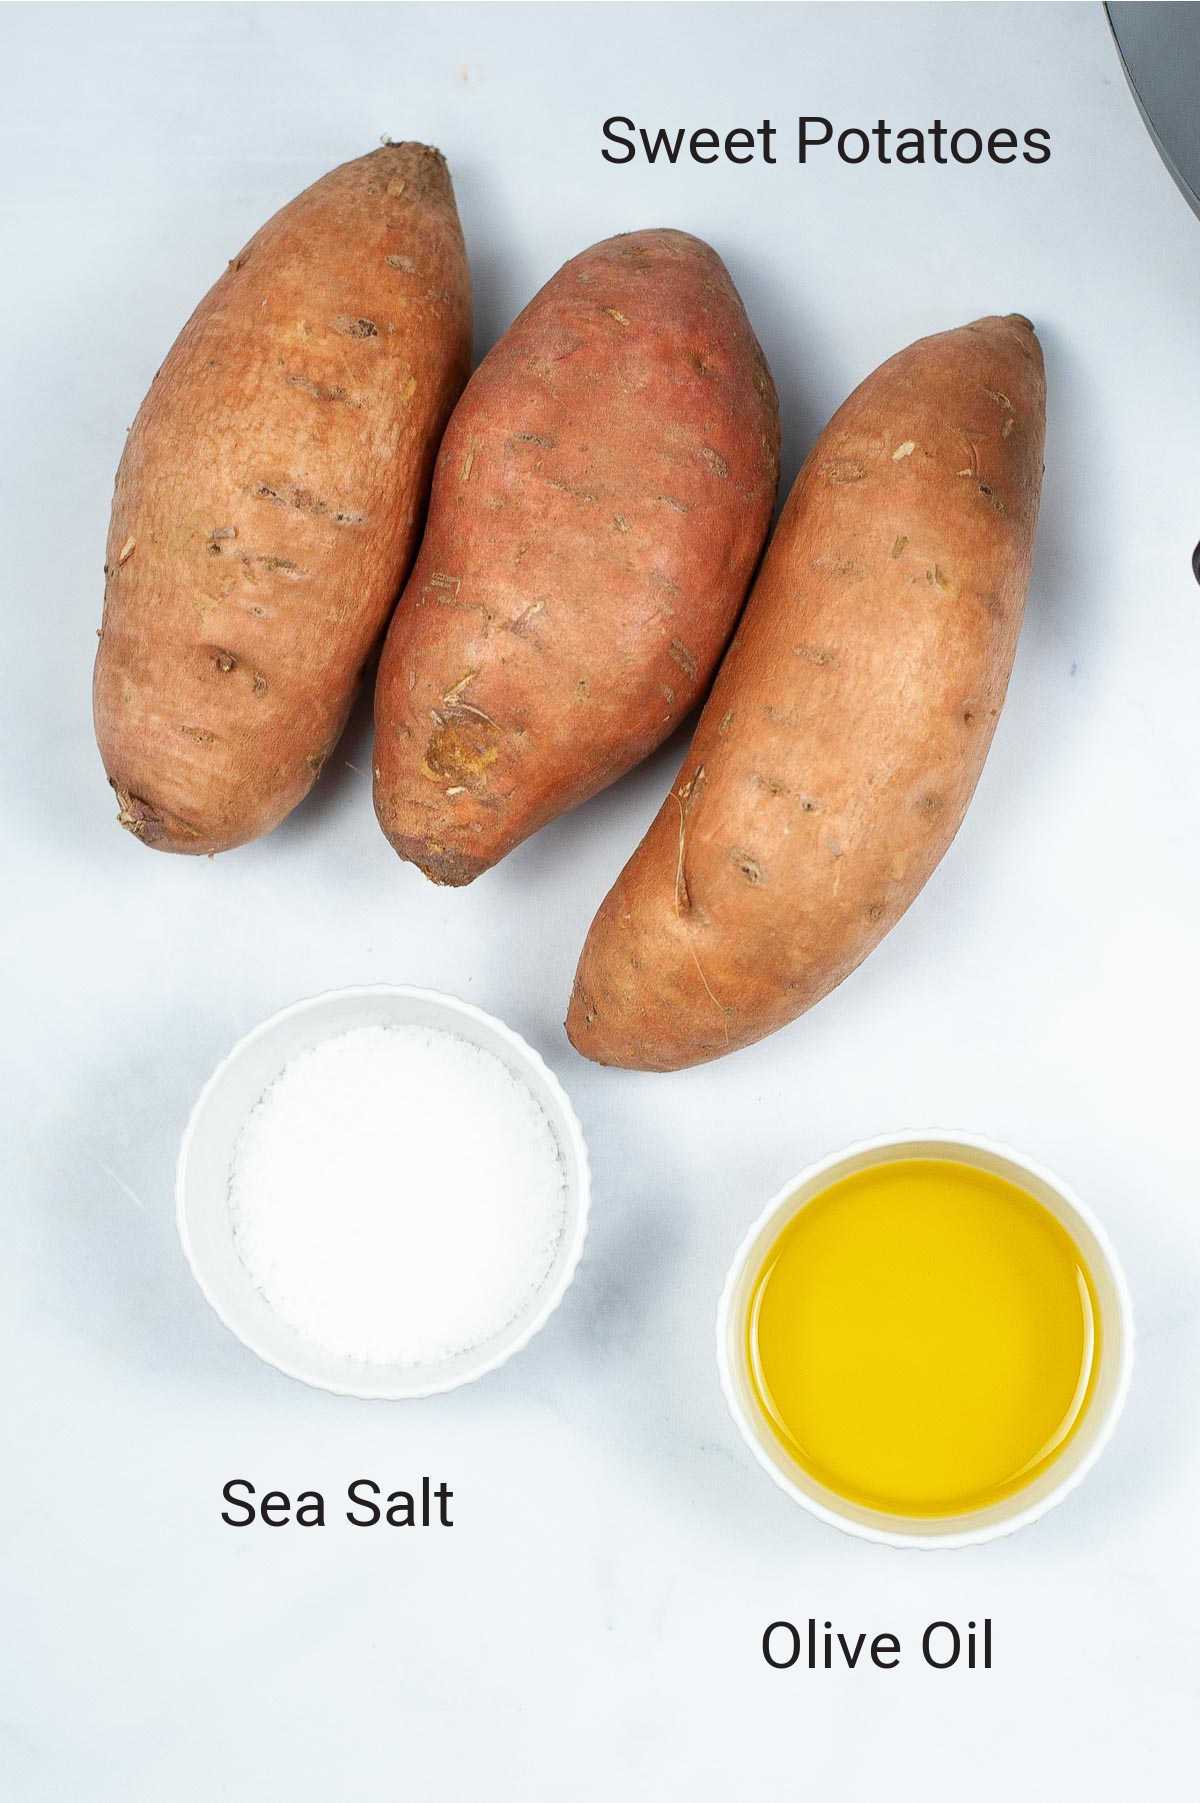 ingredient photo showing the sweet potatoes, salt and oil with labels.